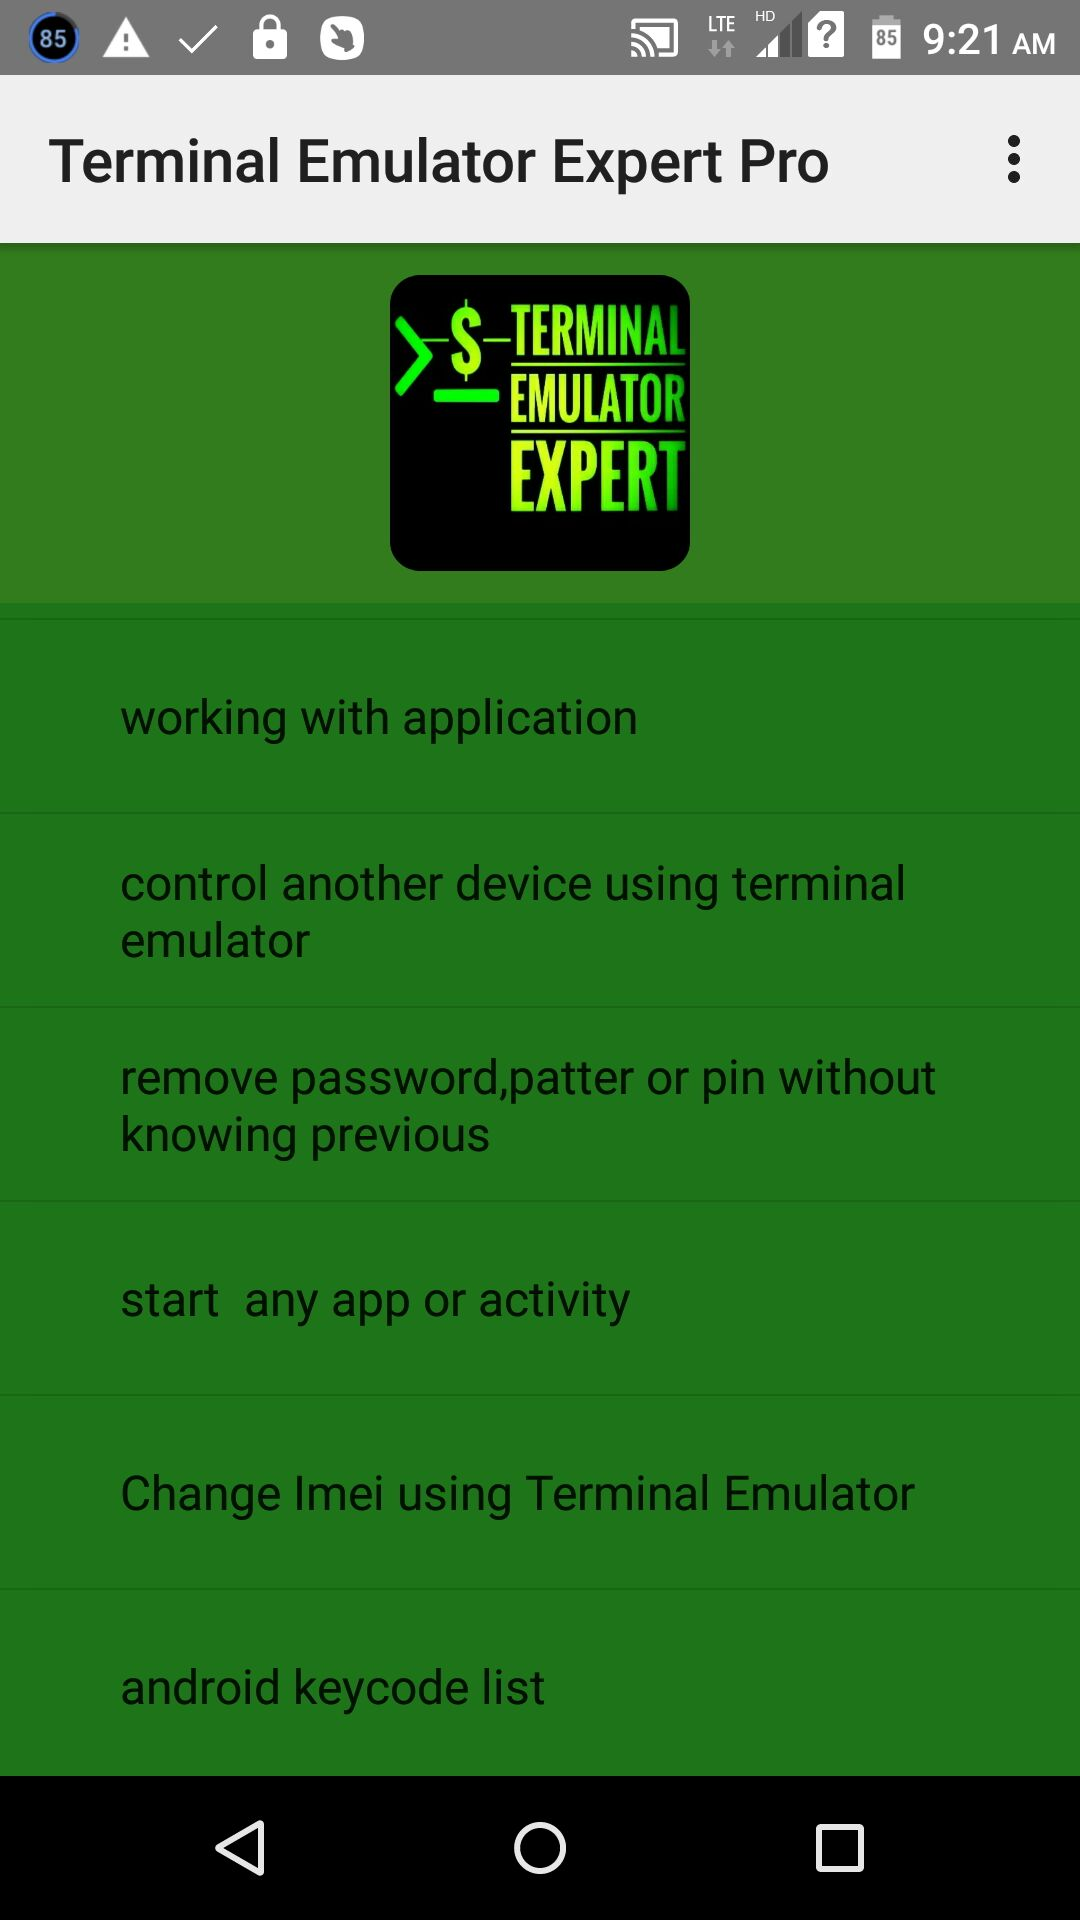 terminal emulator expert pro: Amazon co uk: Appstore for Android